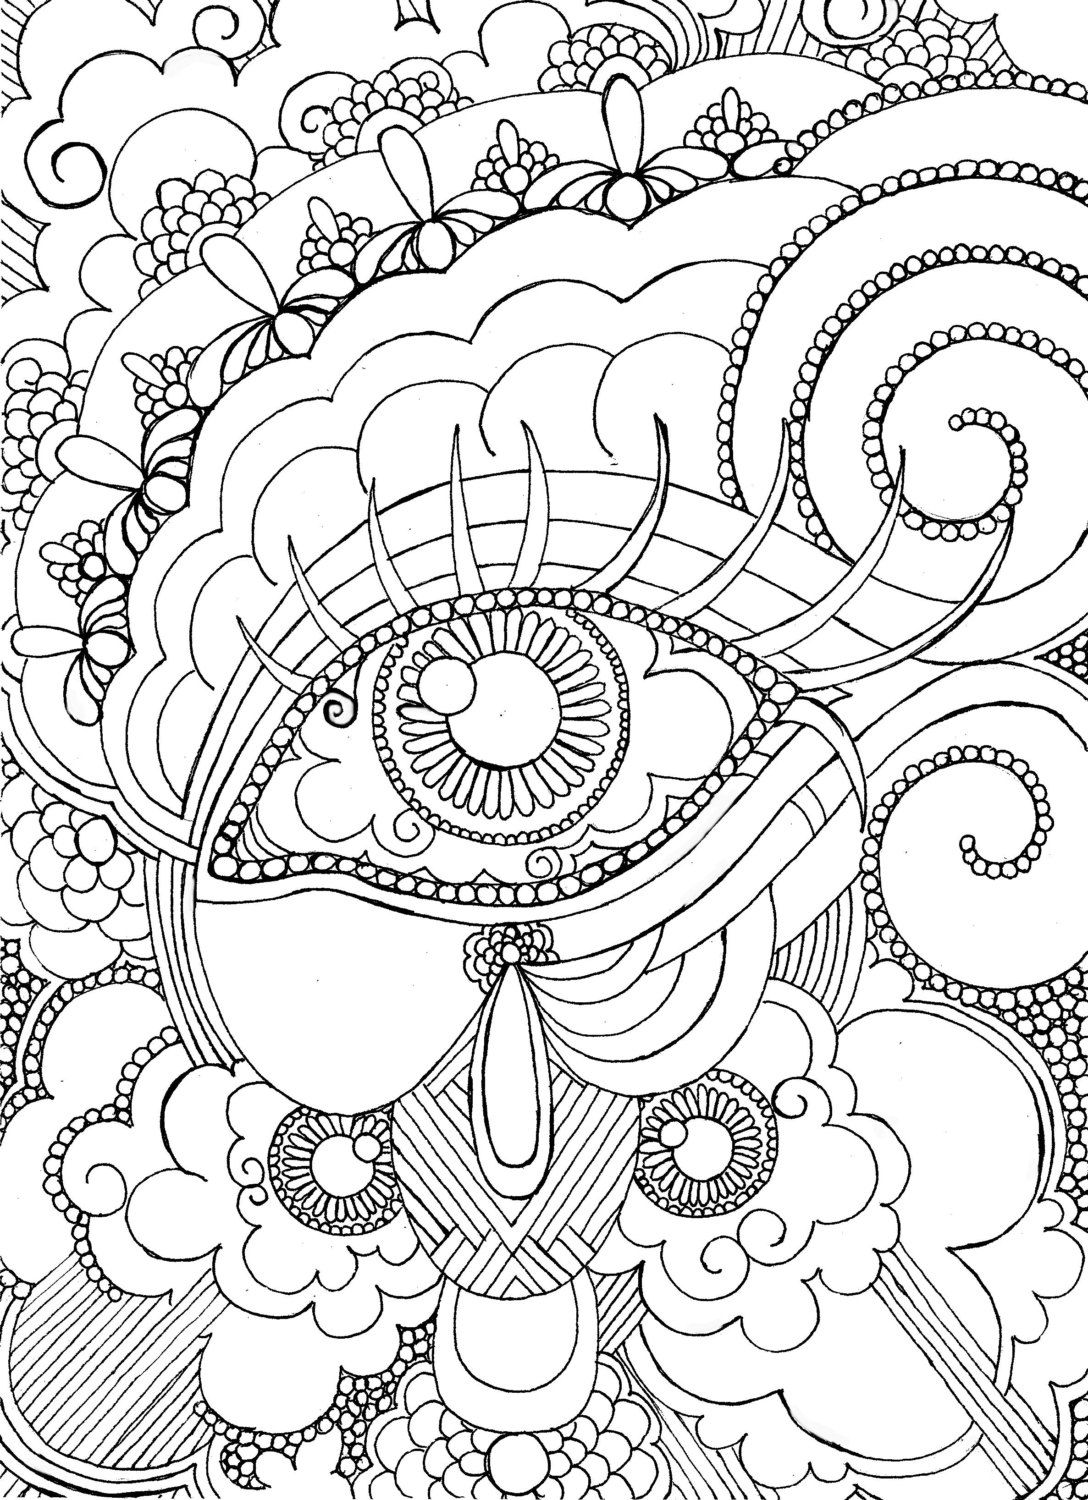 Eye Want To Be Colored Adult Coloring Page By Personatalieart